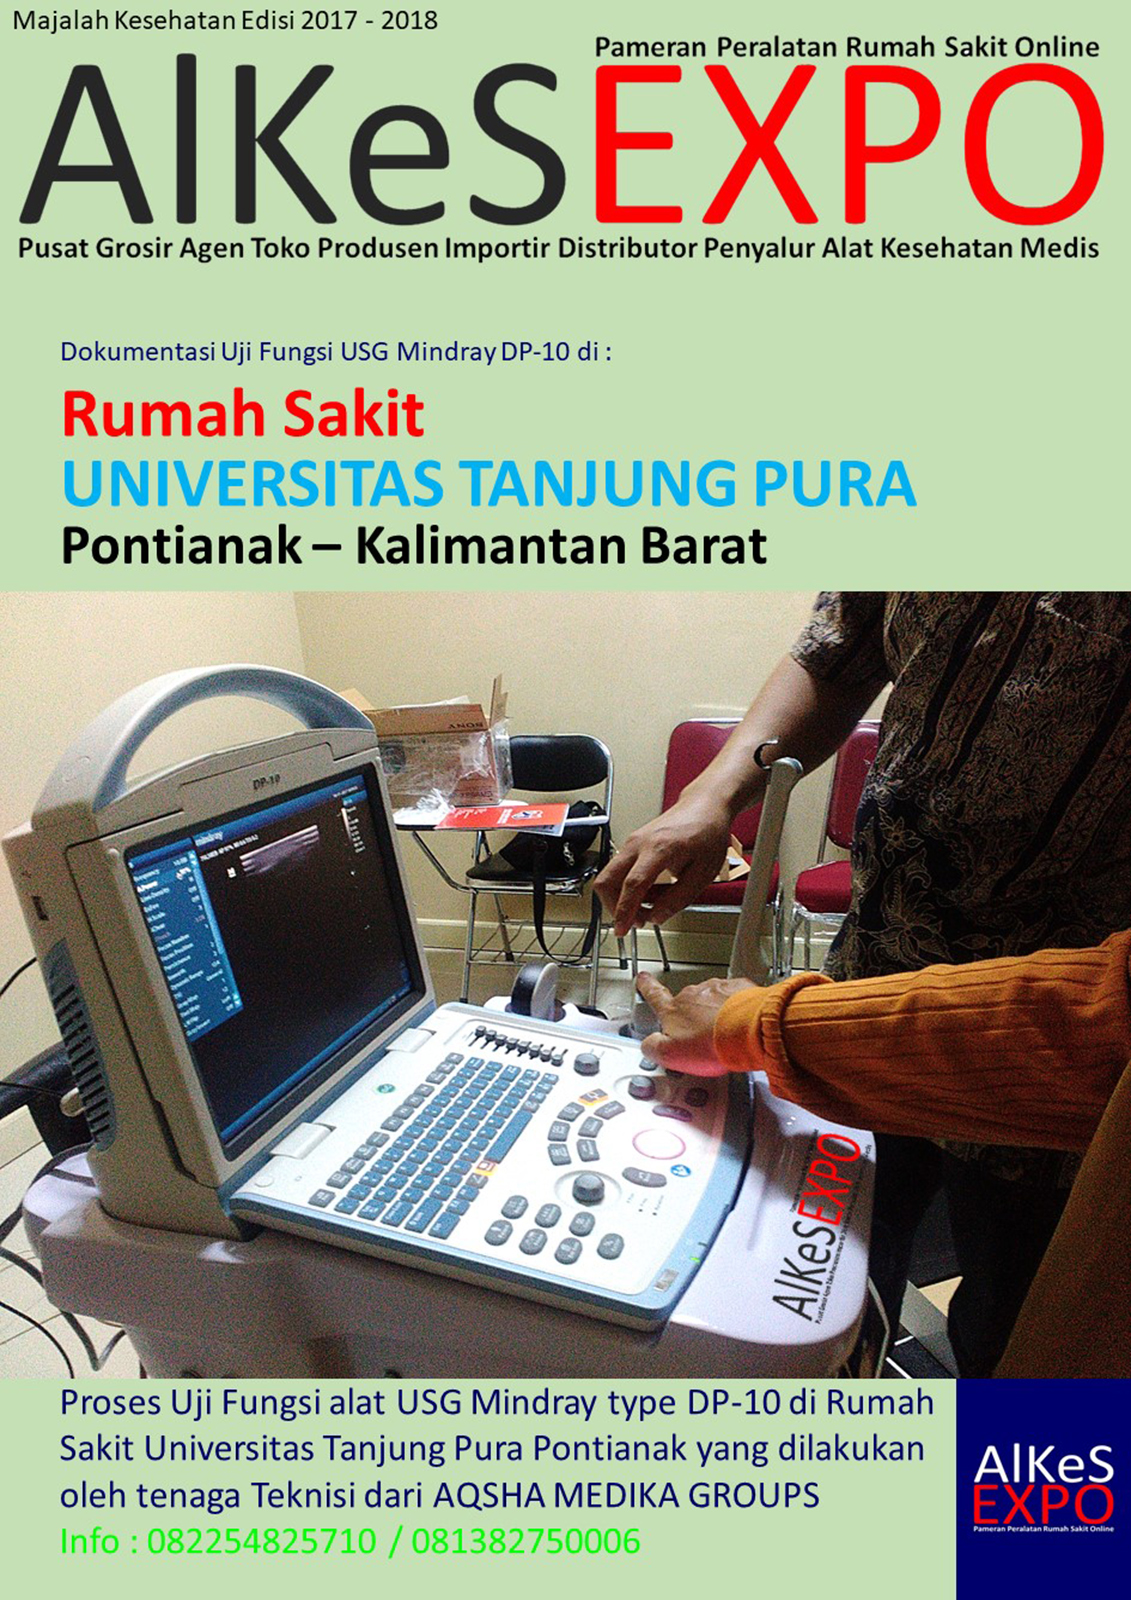 Uji Fungsi USG Mindray DP-10 di RS Universitas Tanjung Pura 2018